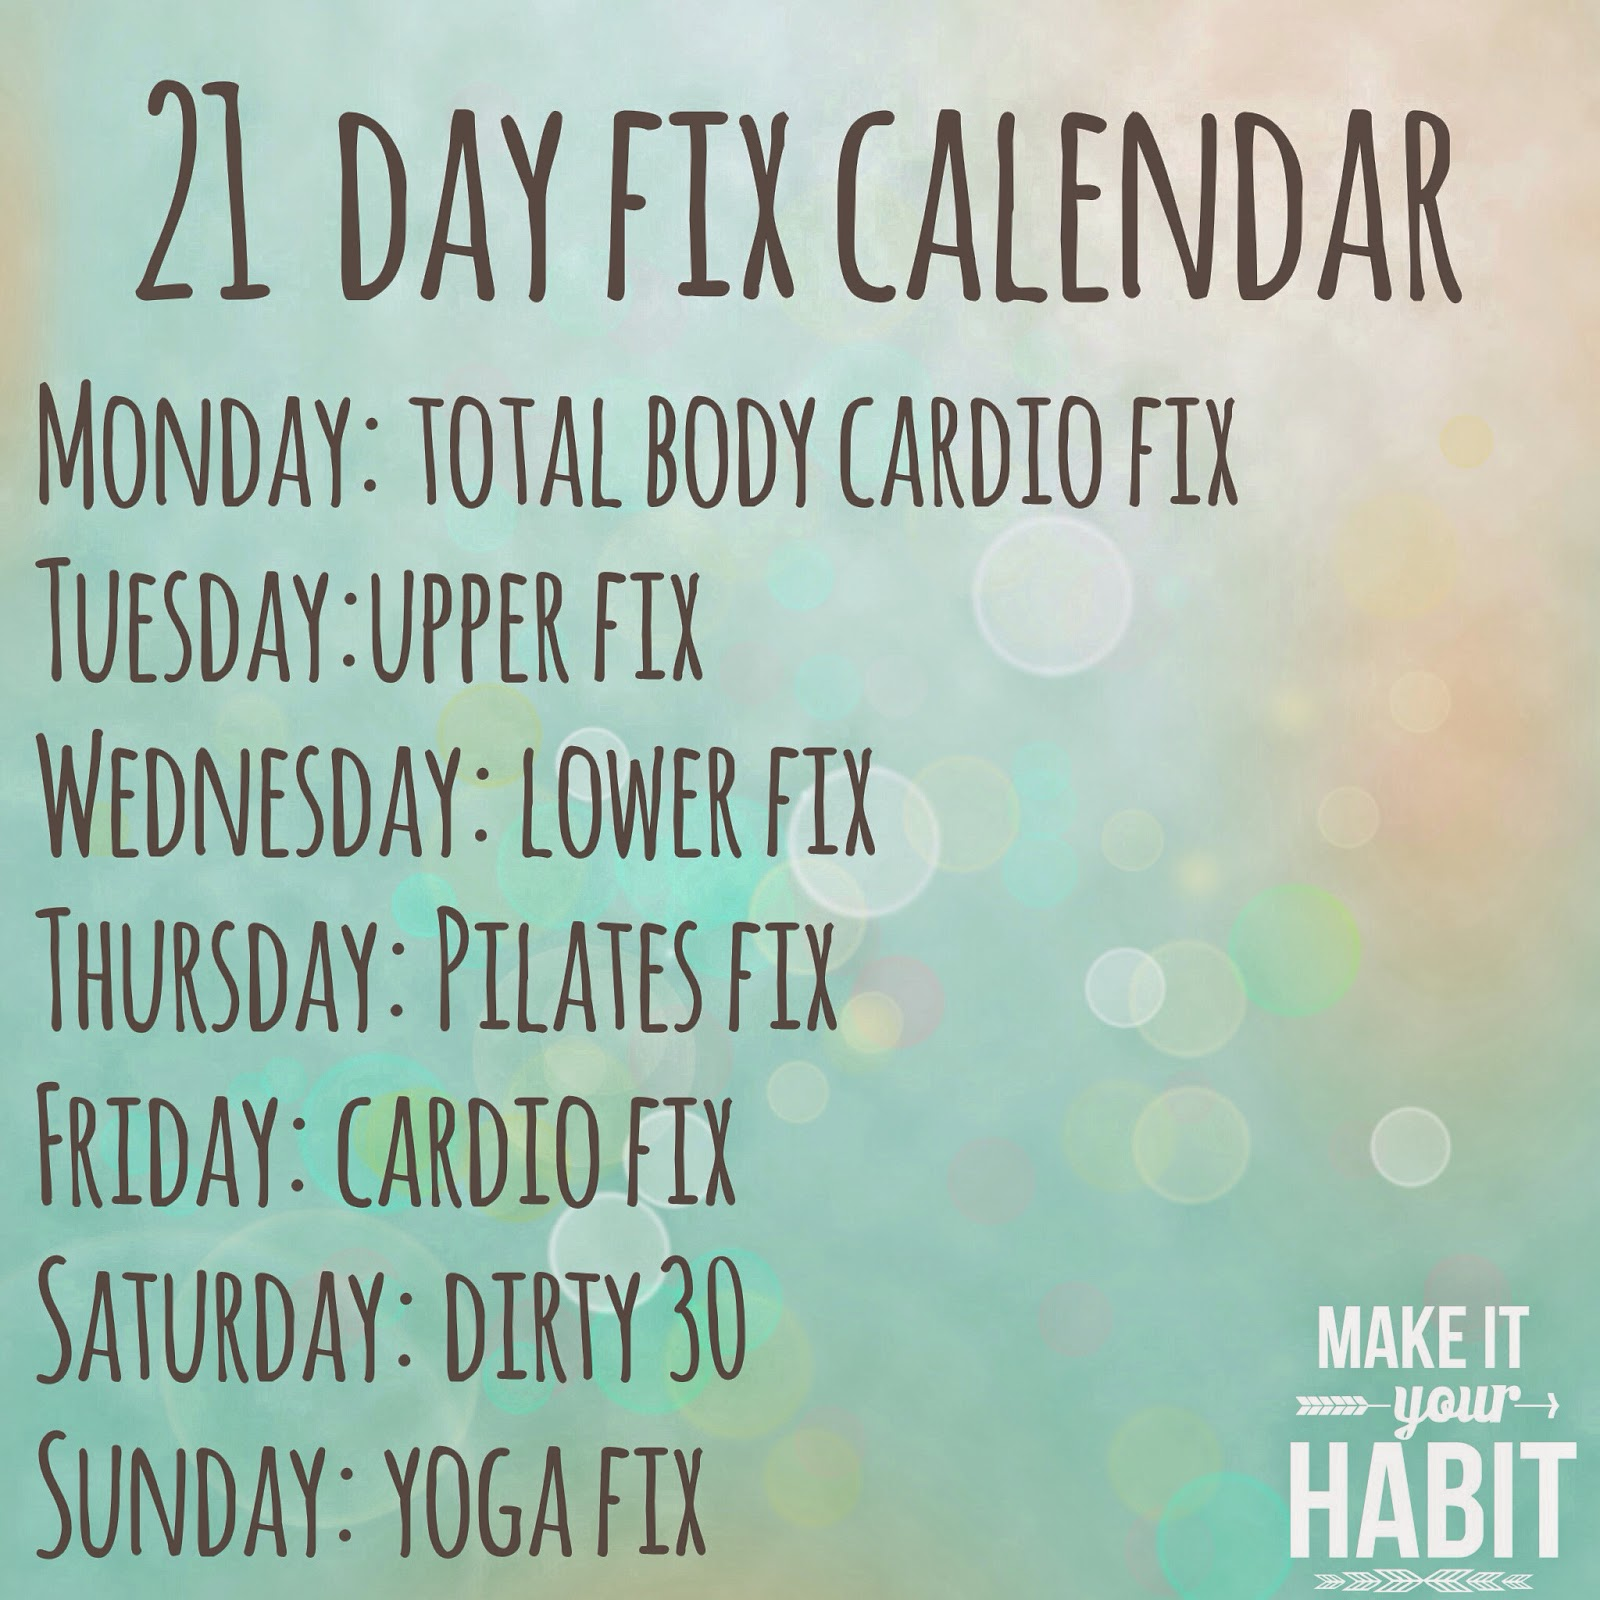 Healthy Happy Amp Gluten Free Making 21 Day Fix Easier With Shared Cheat Sheets